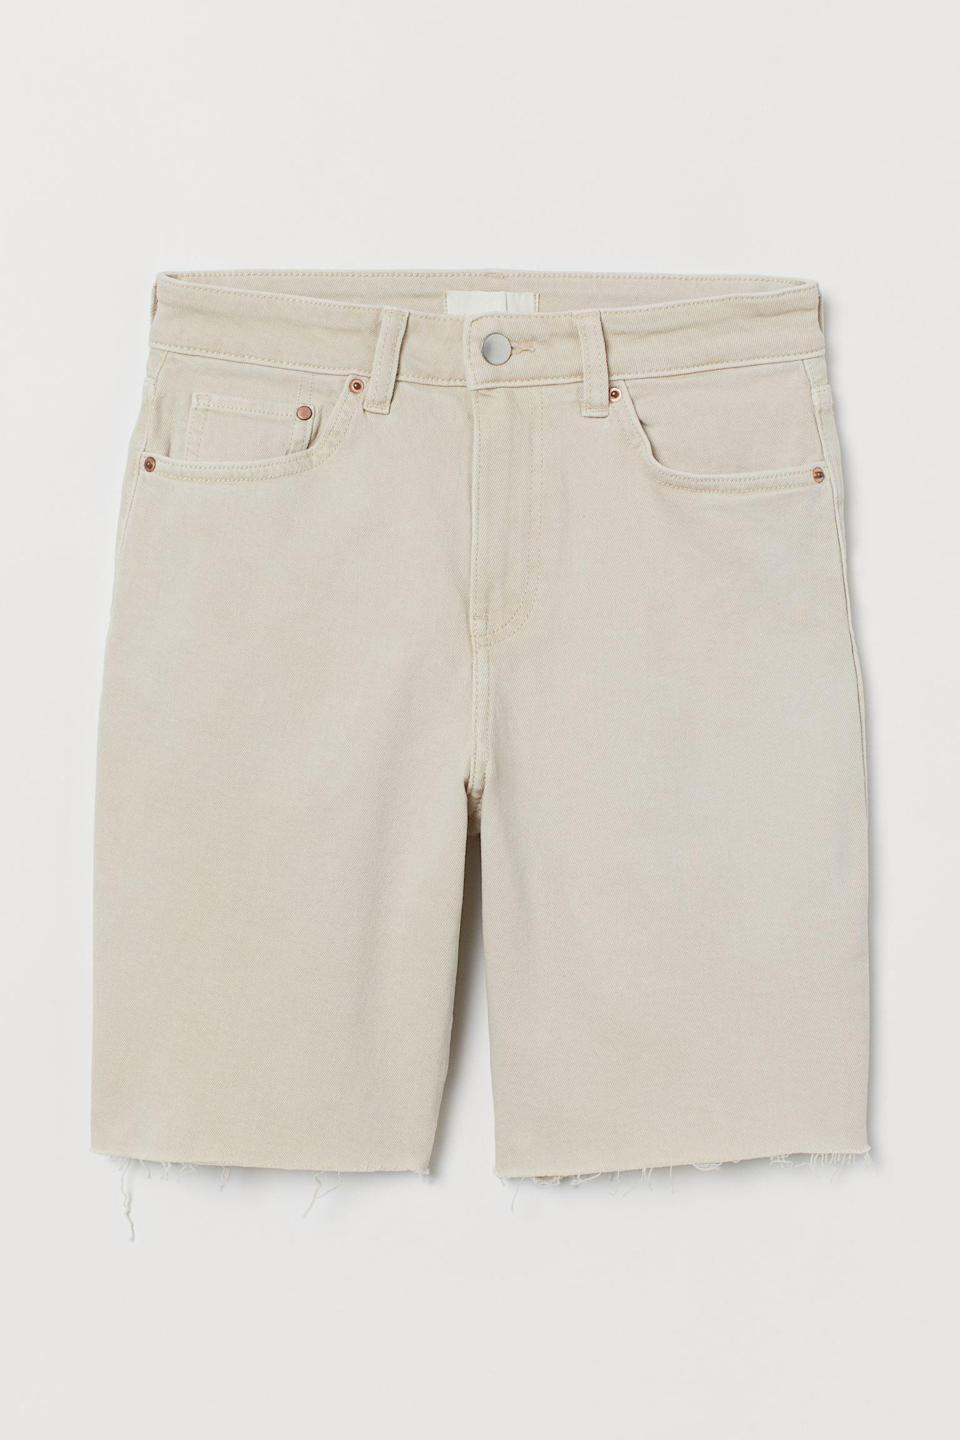 <p>If you're looking for longer-length shorts, consider these cool <span>H&amp;M Denim Shorts High Waist</span> ($30).</p>